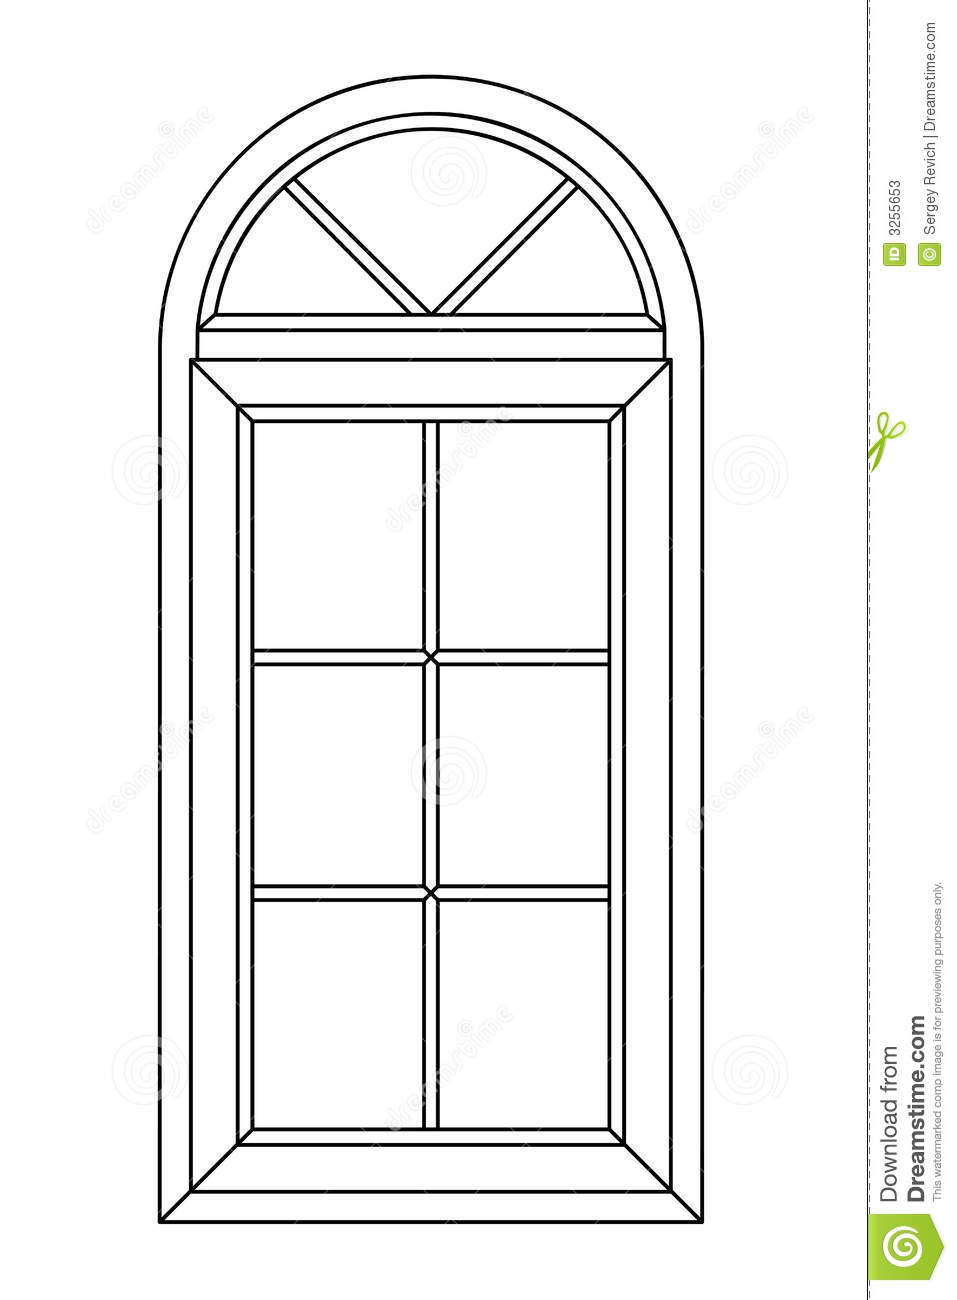 how to draw a ichinl panes